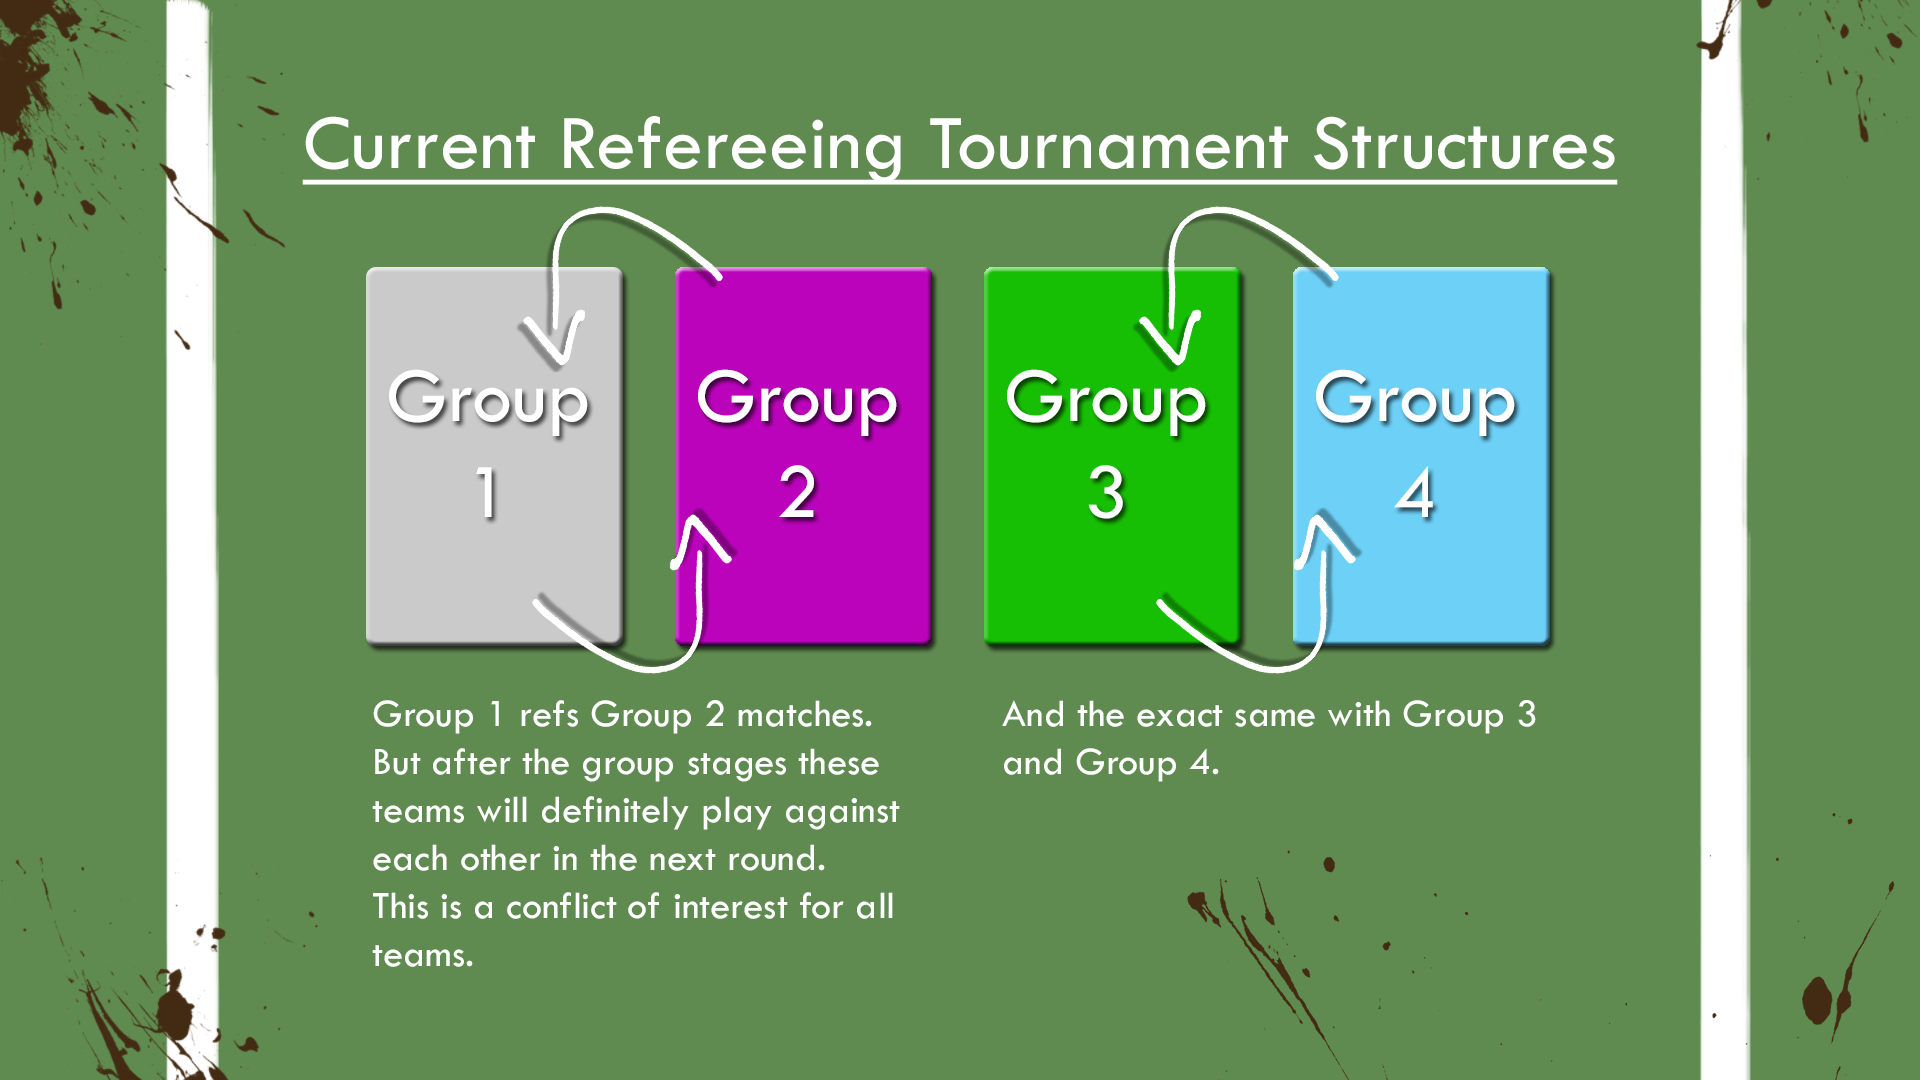 Current Refereeing Tournament Structures